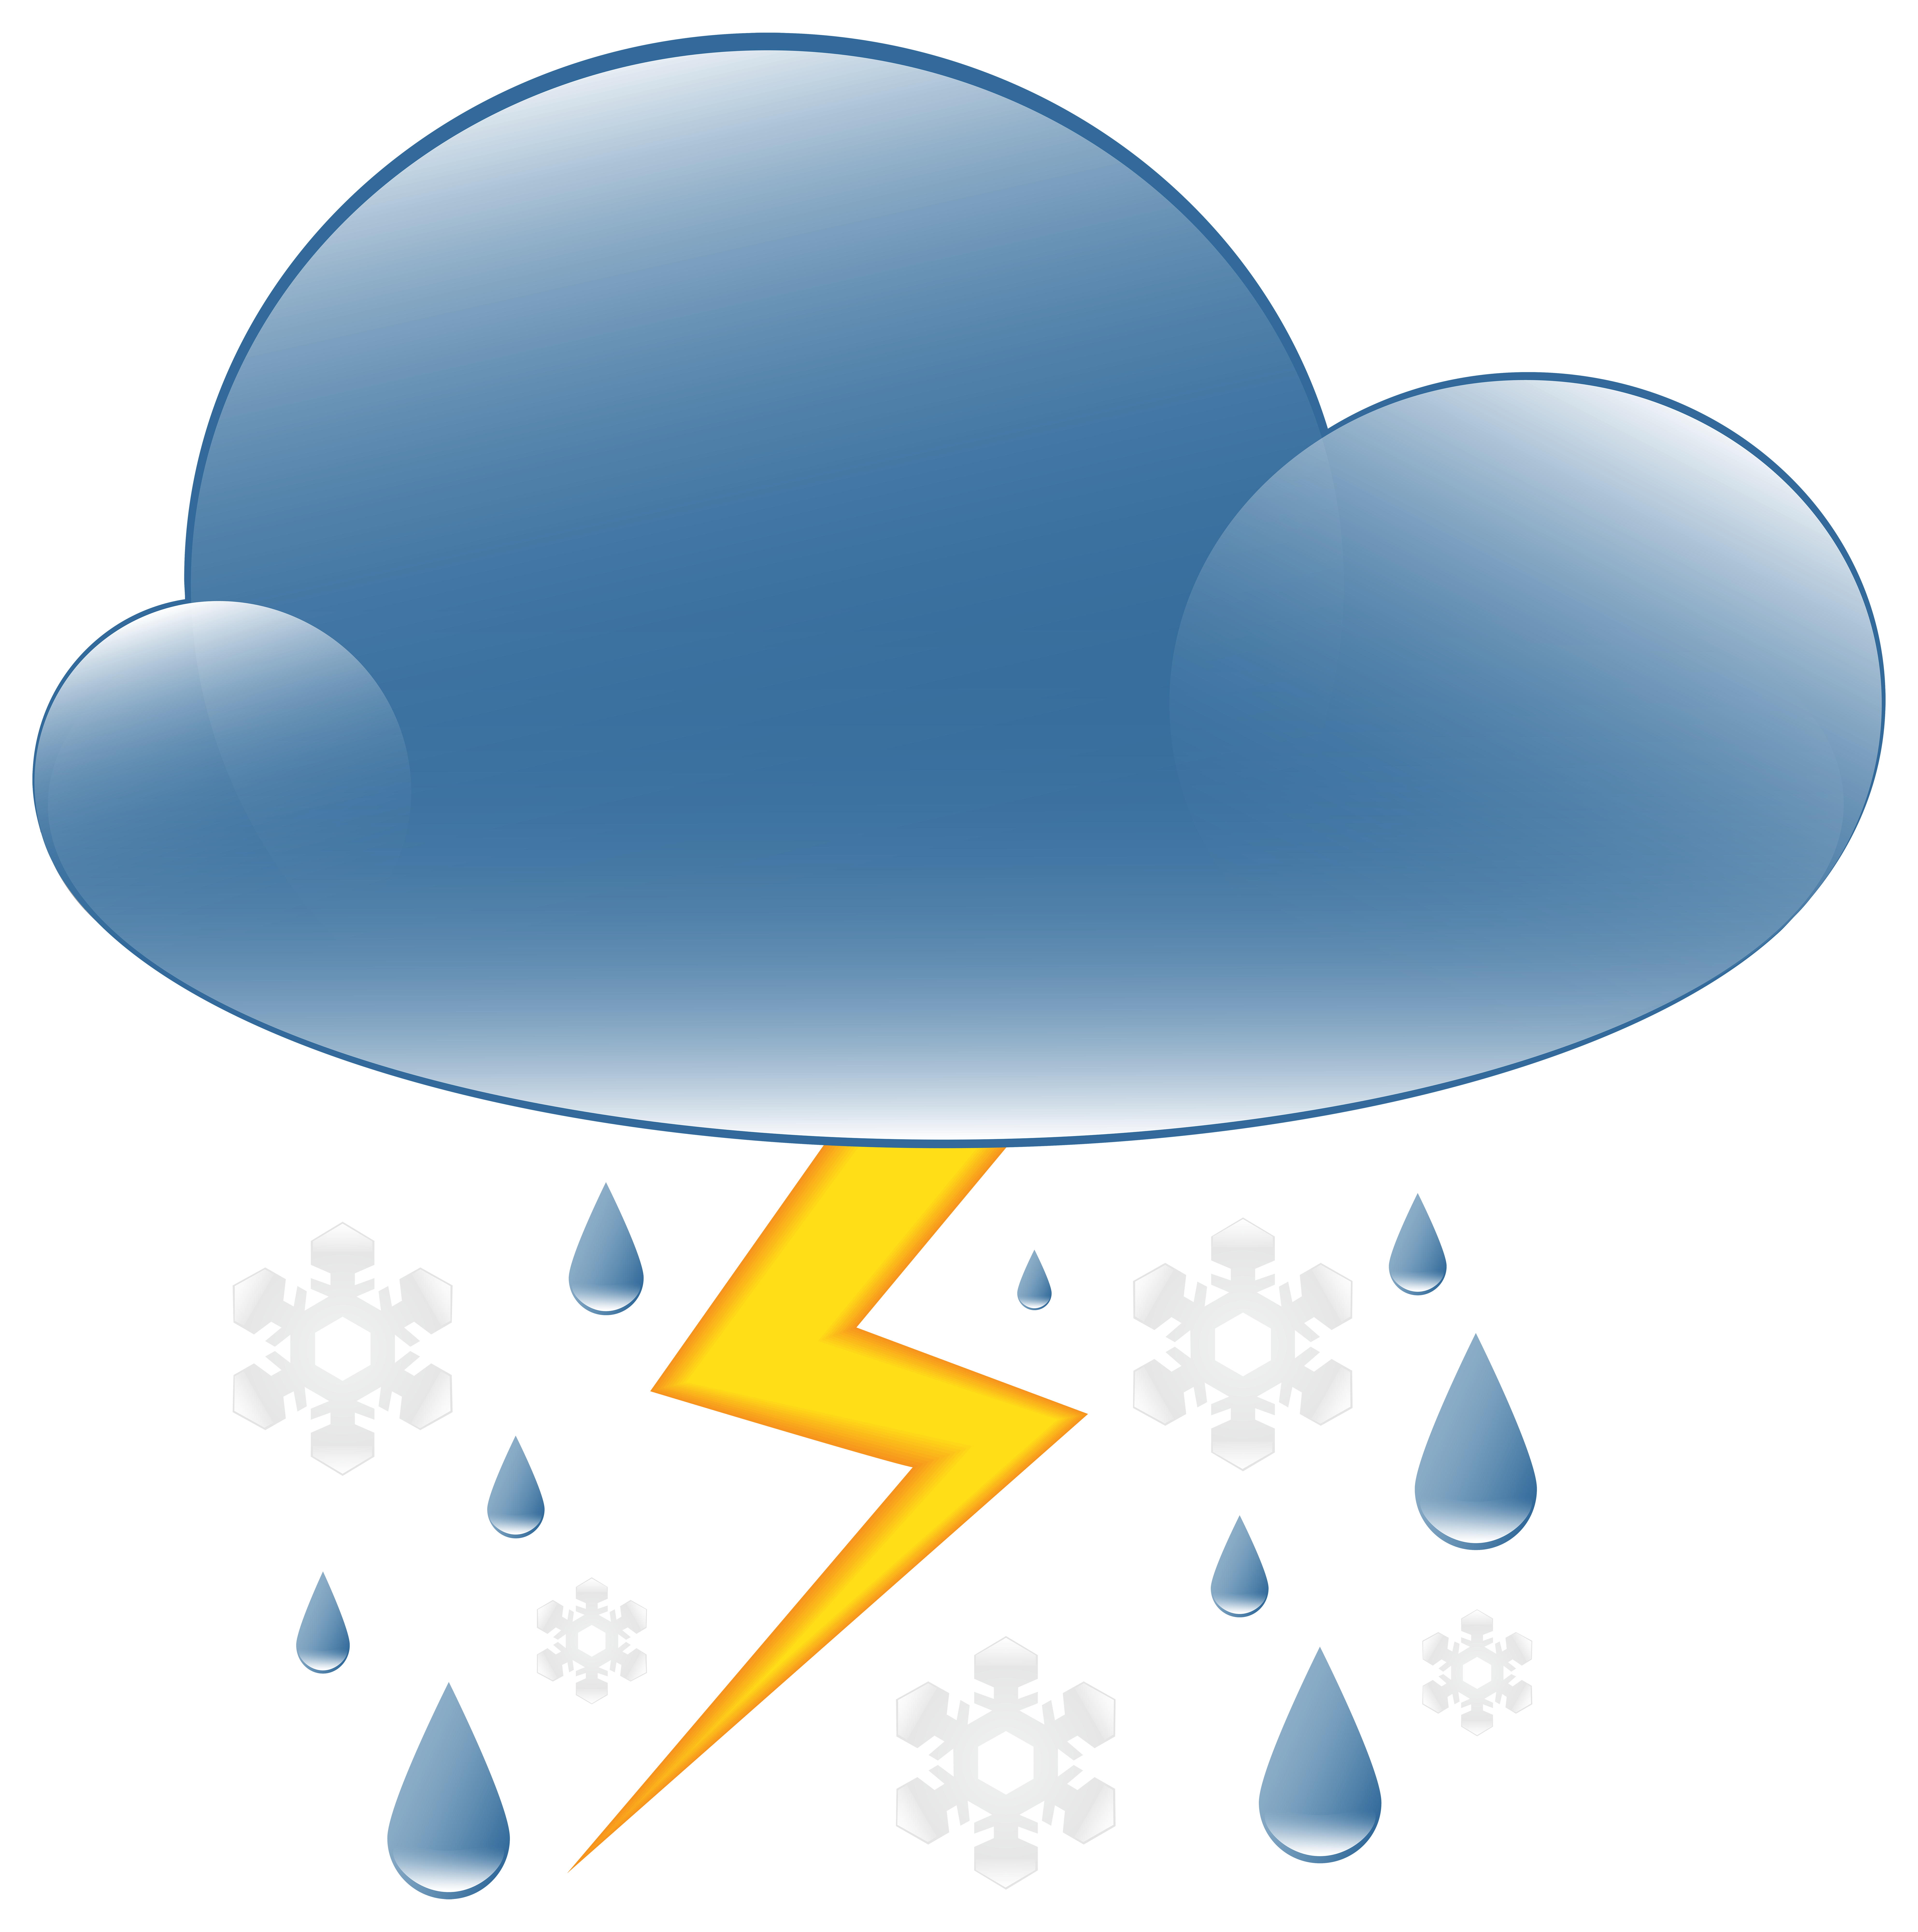 Thunder clipart weather symbol PNG Rain Thunder Weather Rain